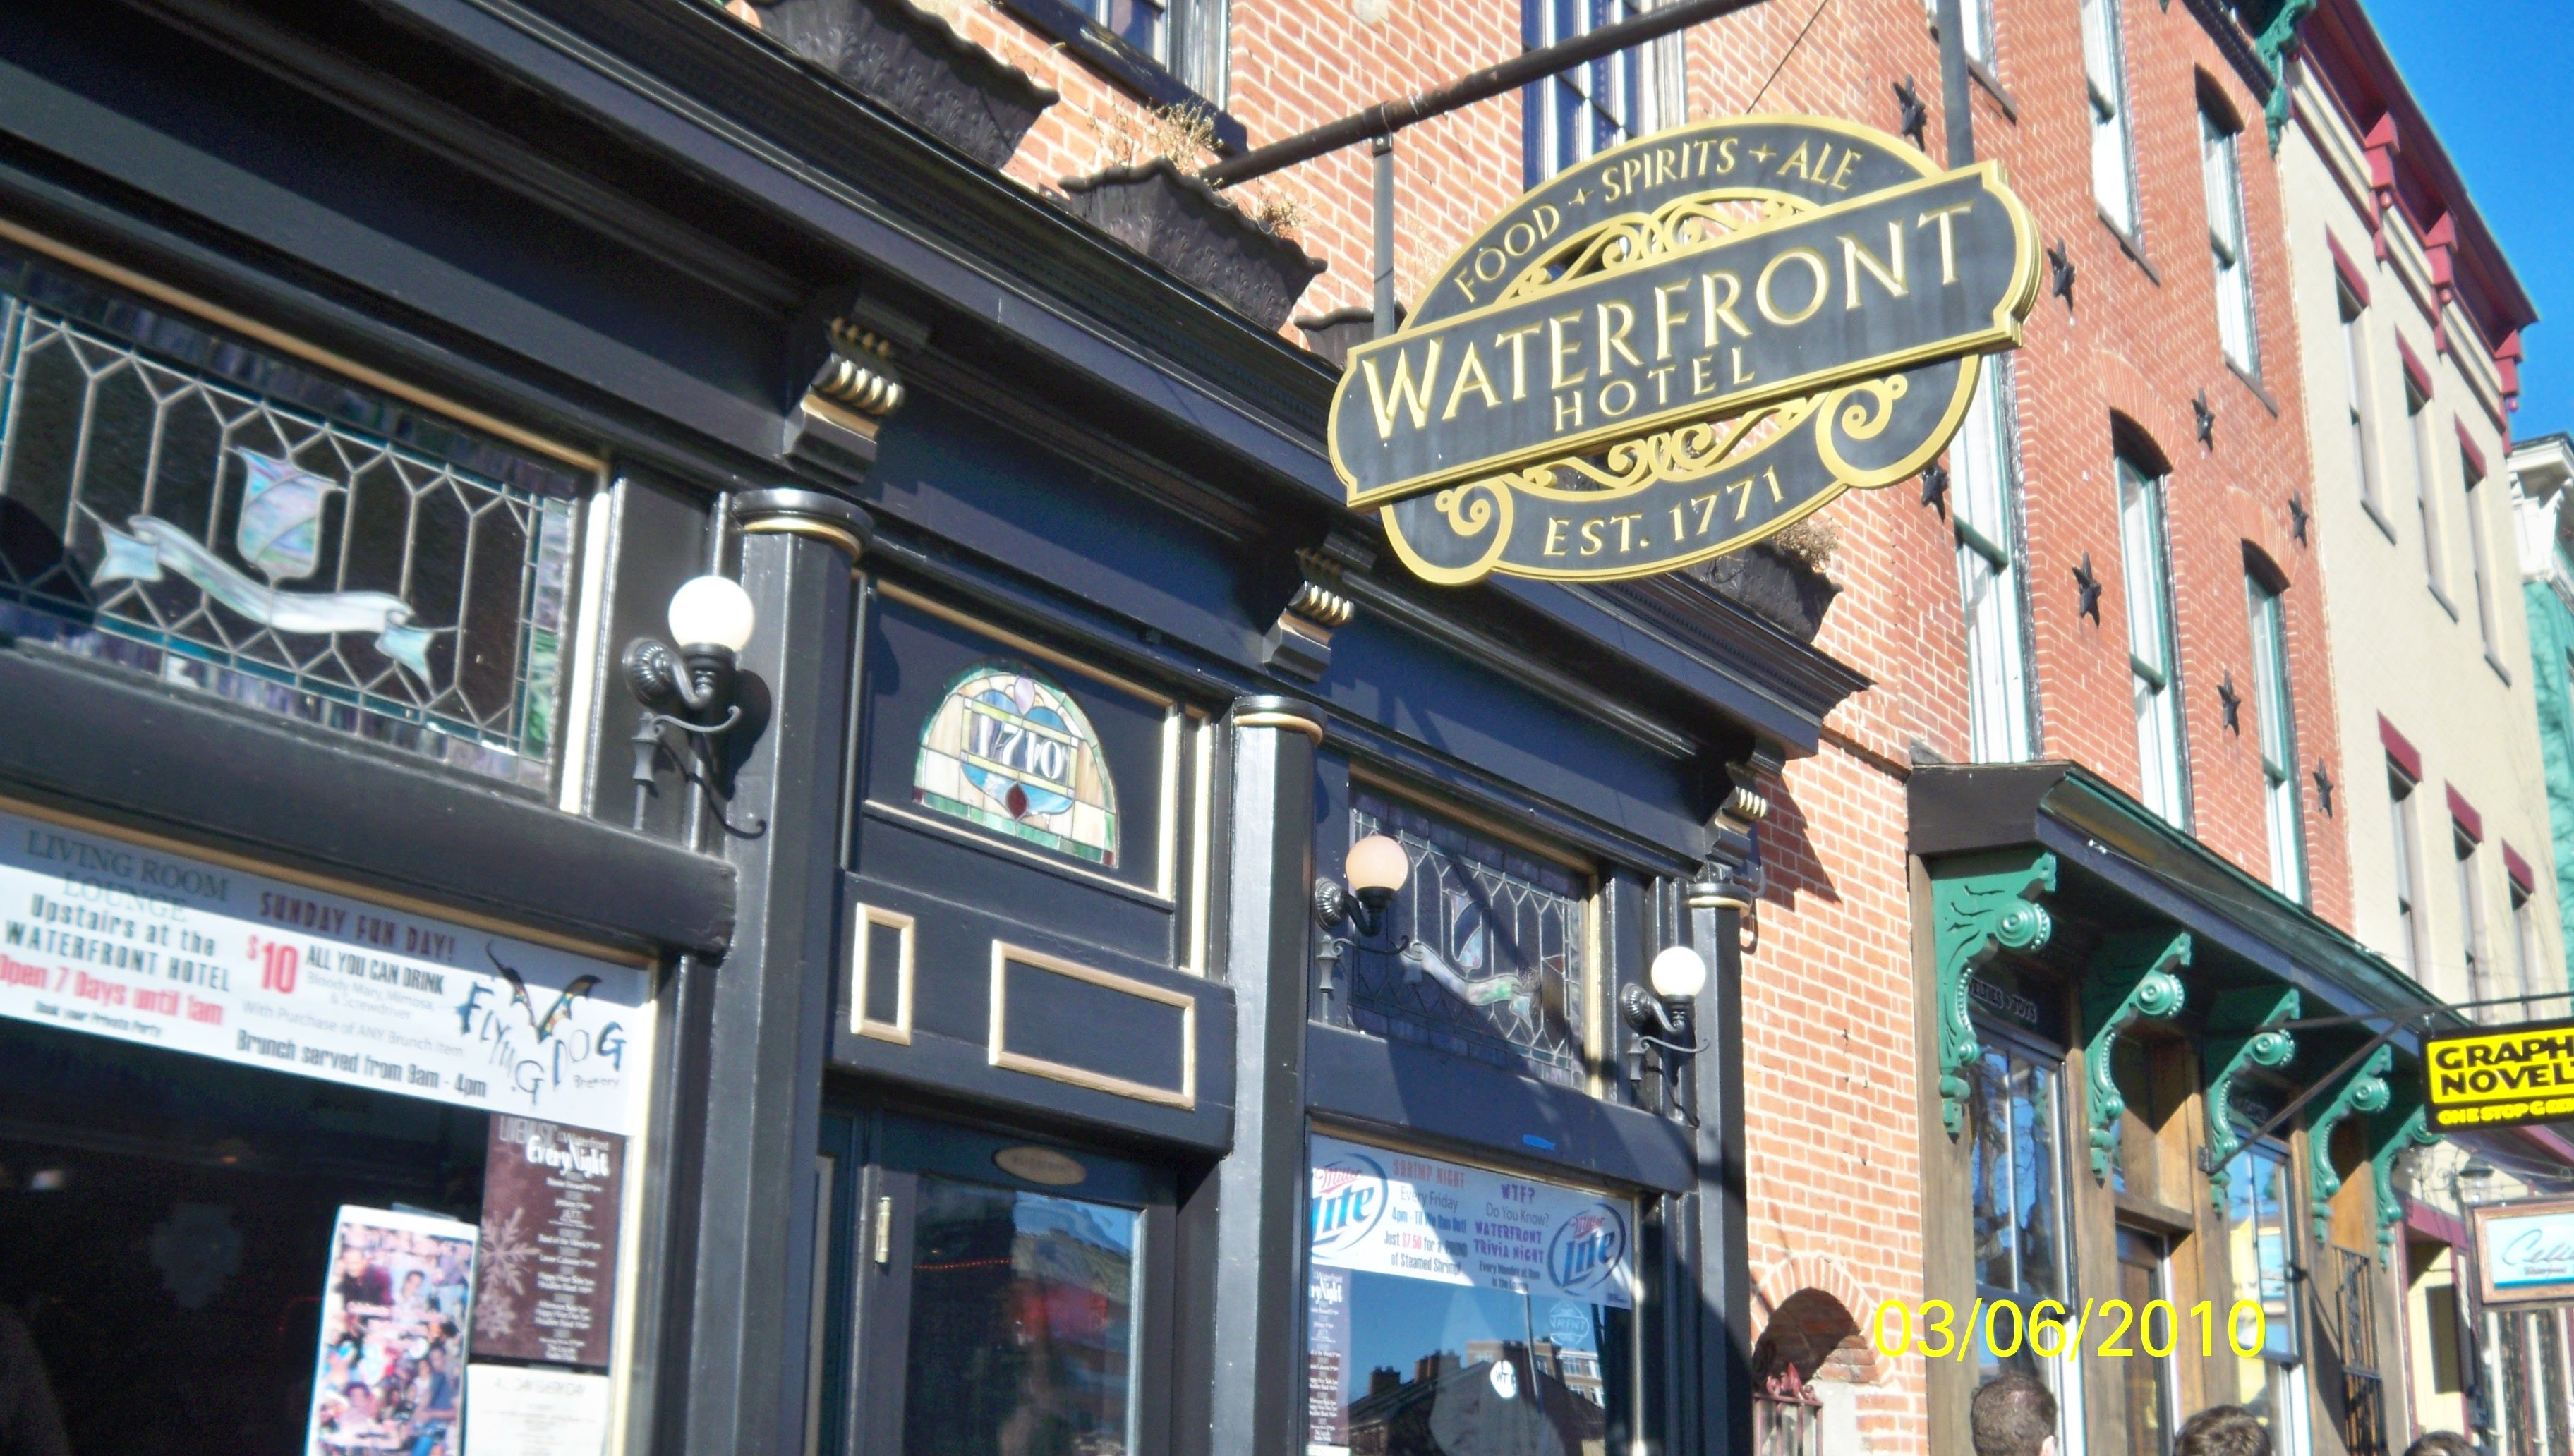 Waterfront Hotel Tavern Fells Point Baltimore Maryland Hauntings Eastern Enies